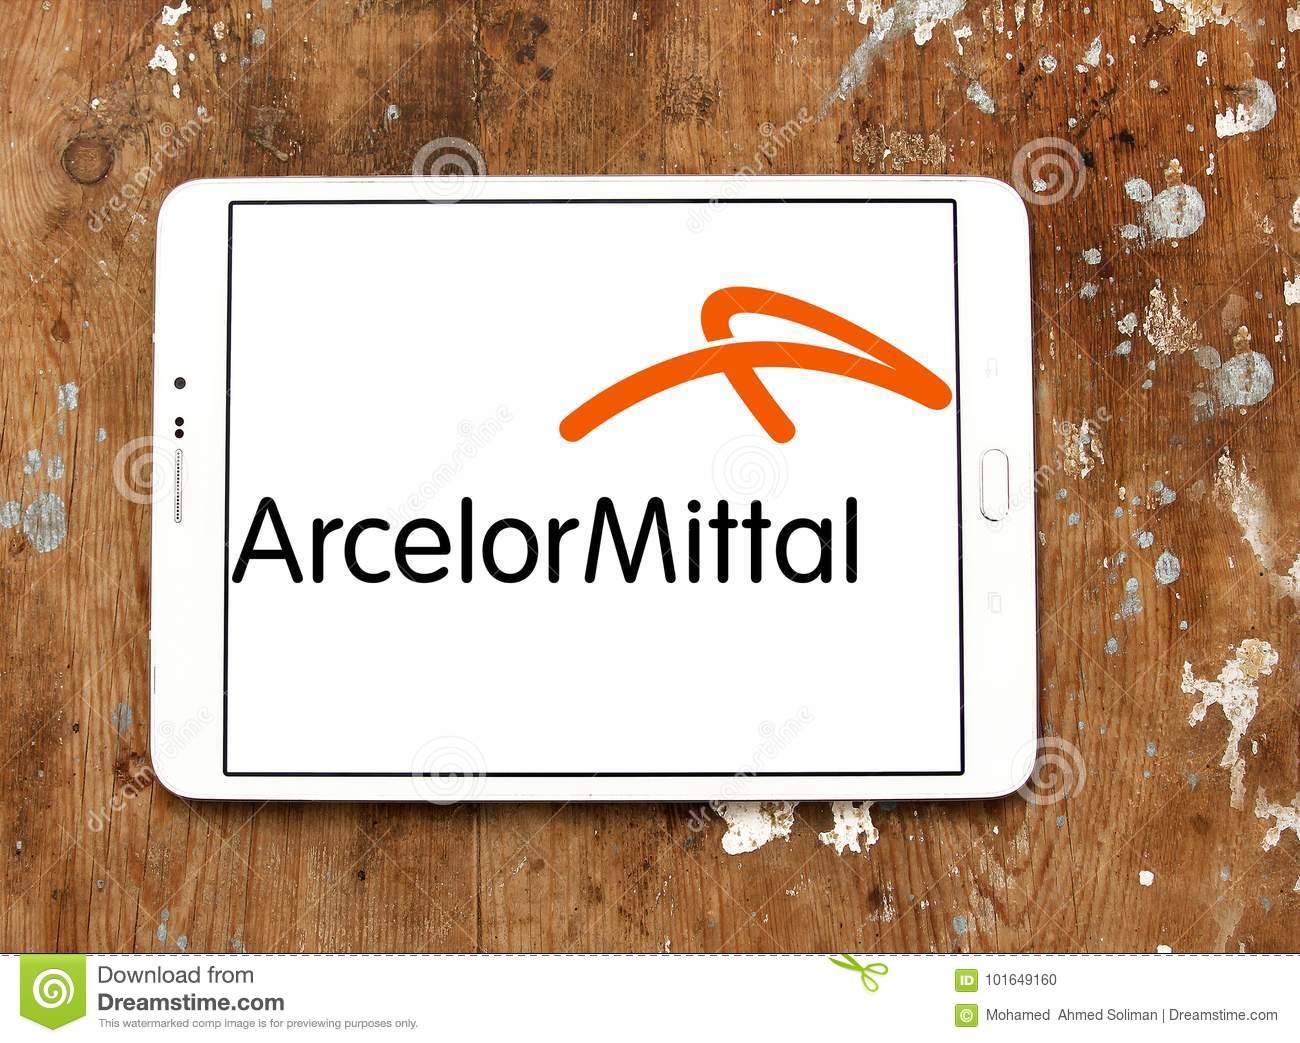 ArcelorMittal Steel Manufacturing Company Logo Editorial